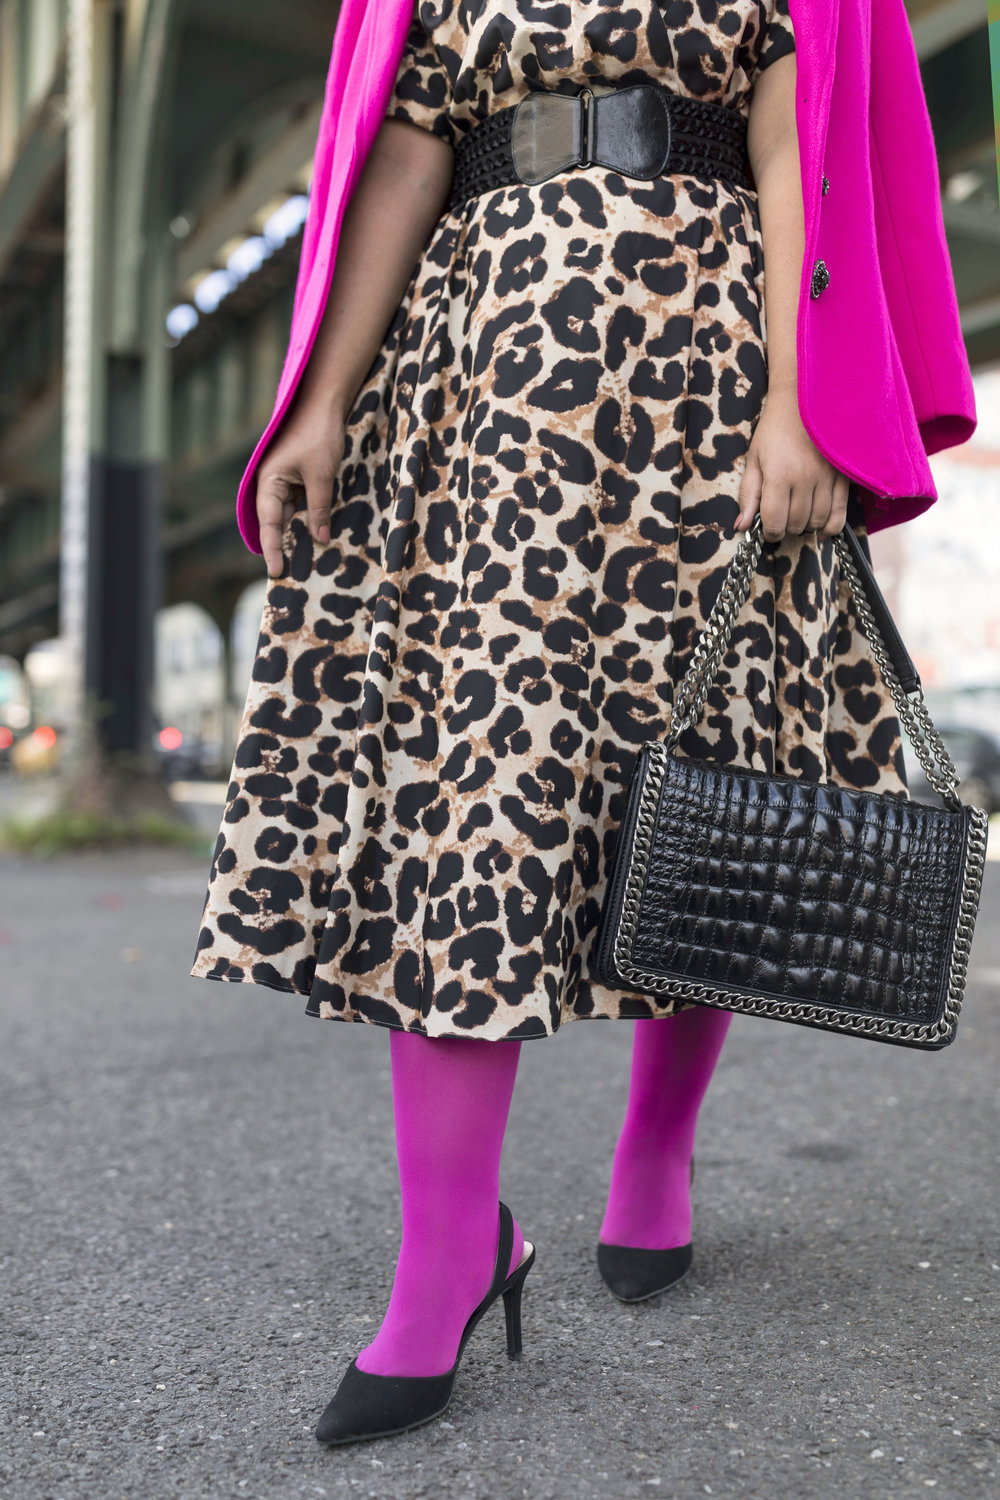 Krity S x Fall Trends x Cheetah Print 12.jpg